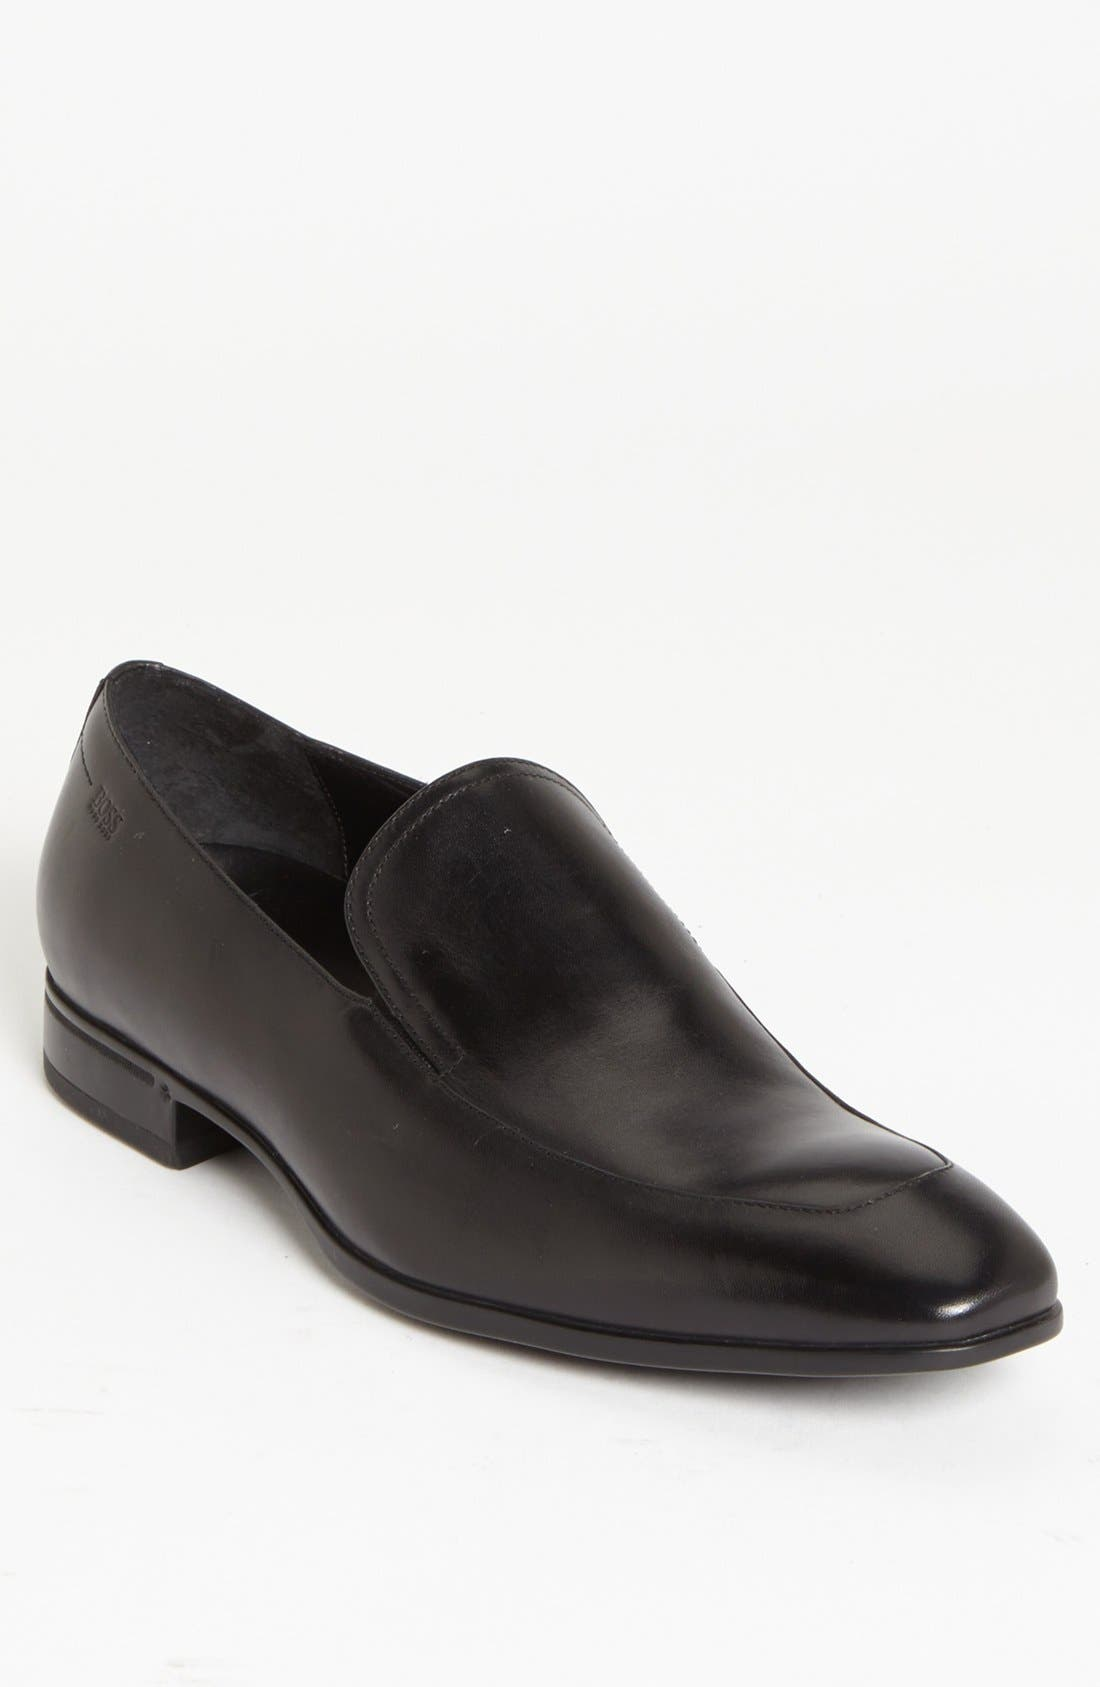 Alternate Image 1 Selected - BOSS HUGO BOSS 'Varmons' Apron Toe Loafer (Men)